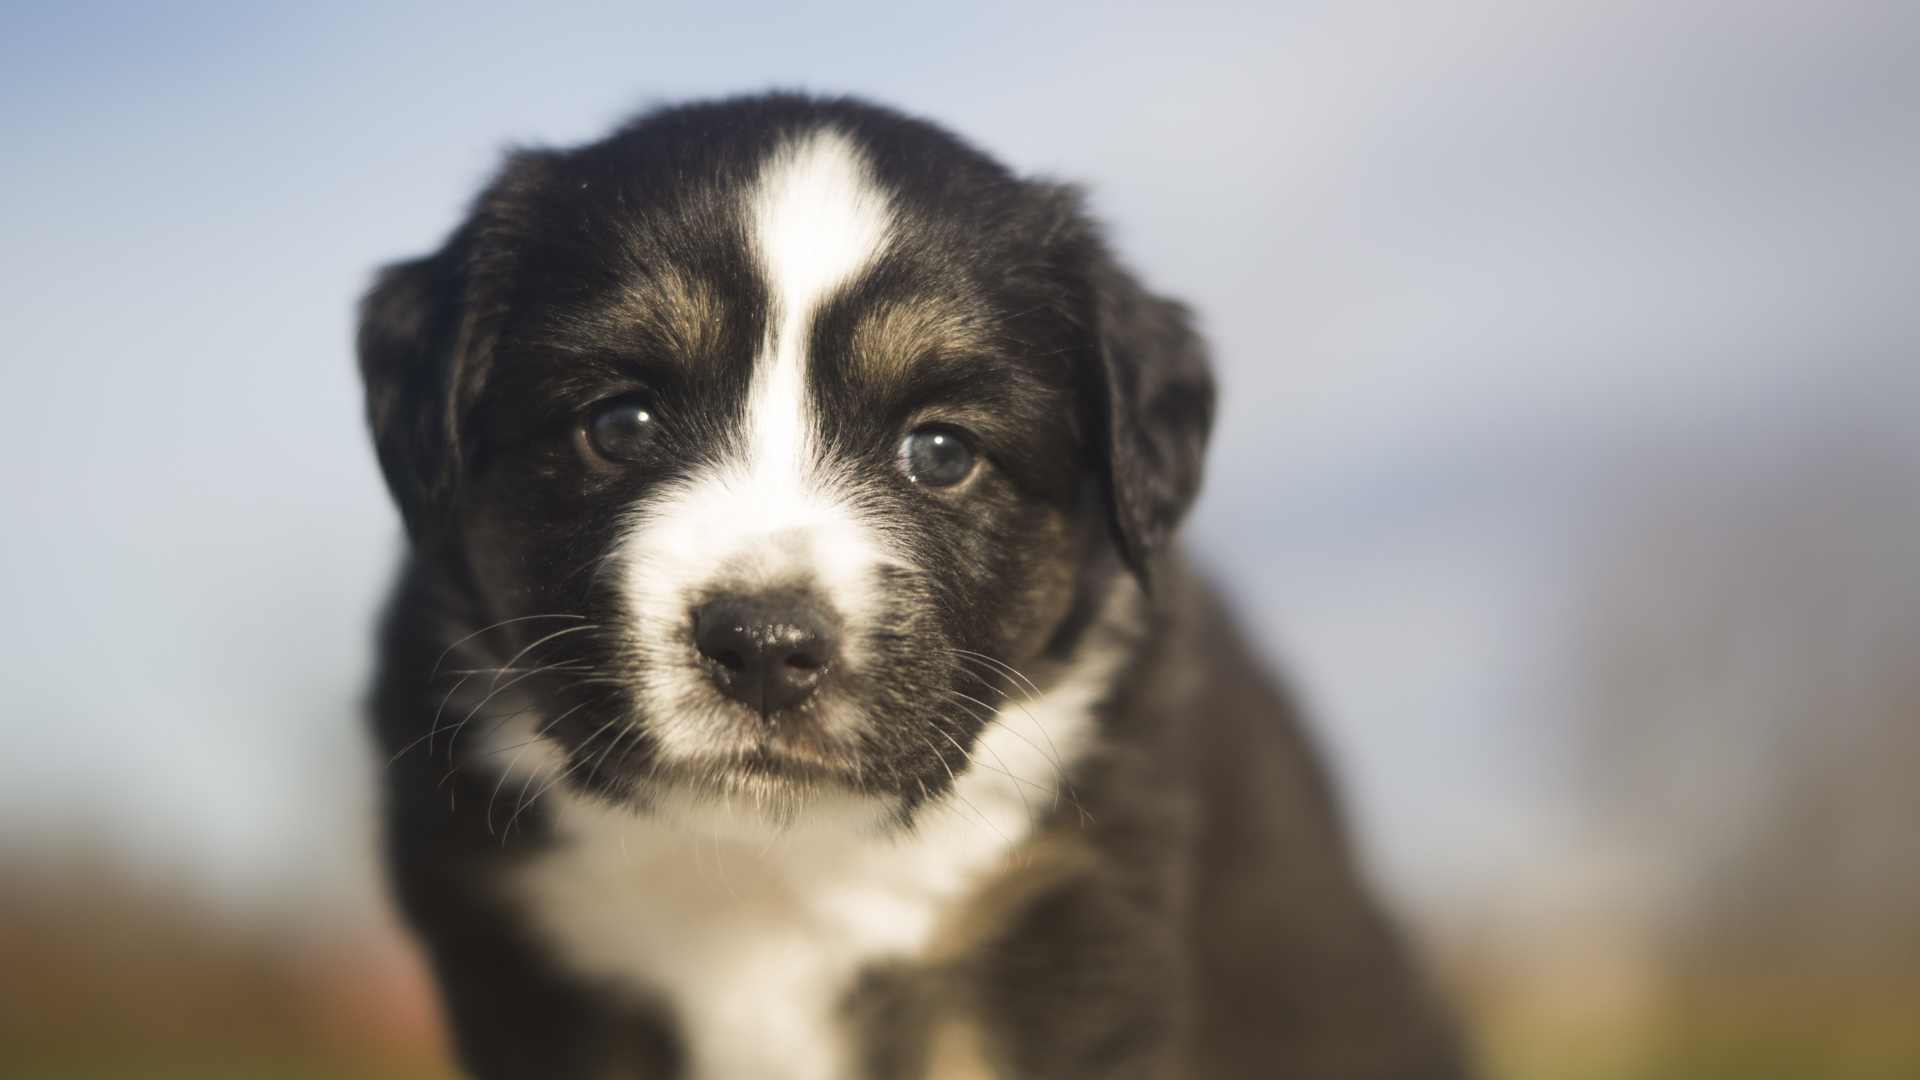 Miniature Australian Shepherd Puppy from Breezemore's Maine Mini Aussies!